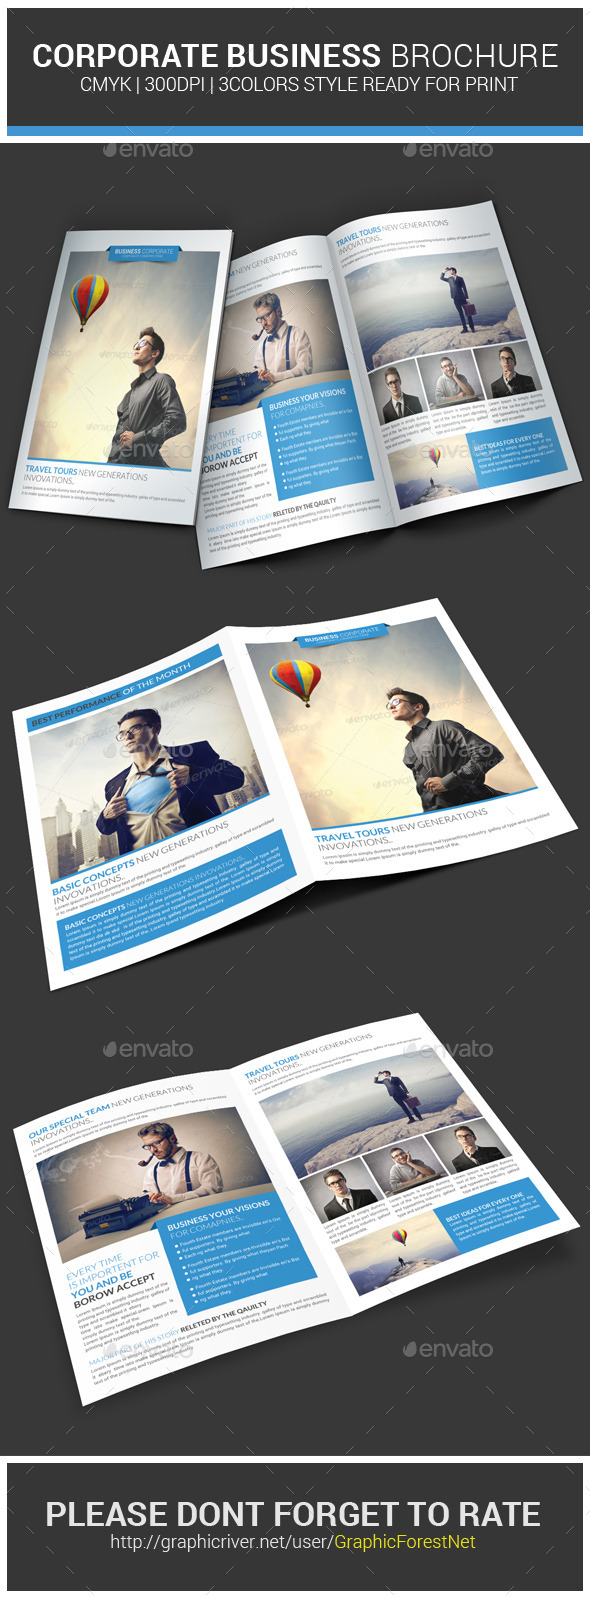 GraphicRiver Corporate Business Brochure Psd Template 8973383